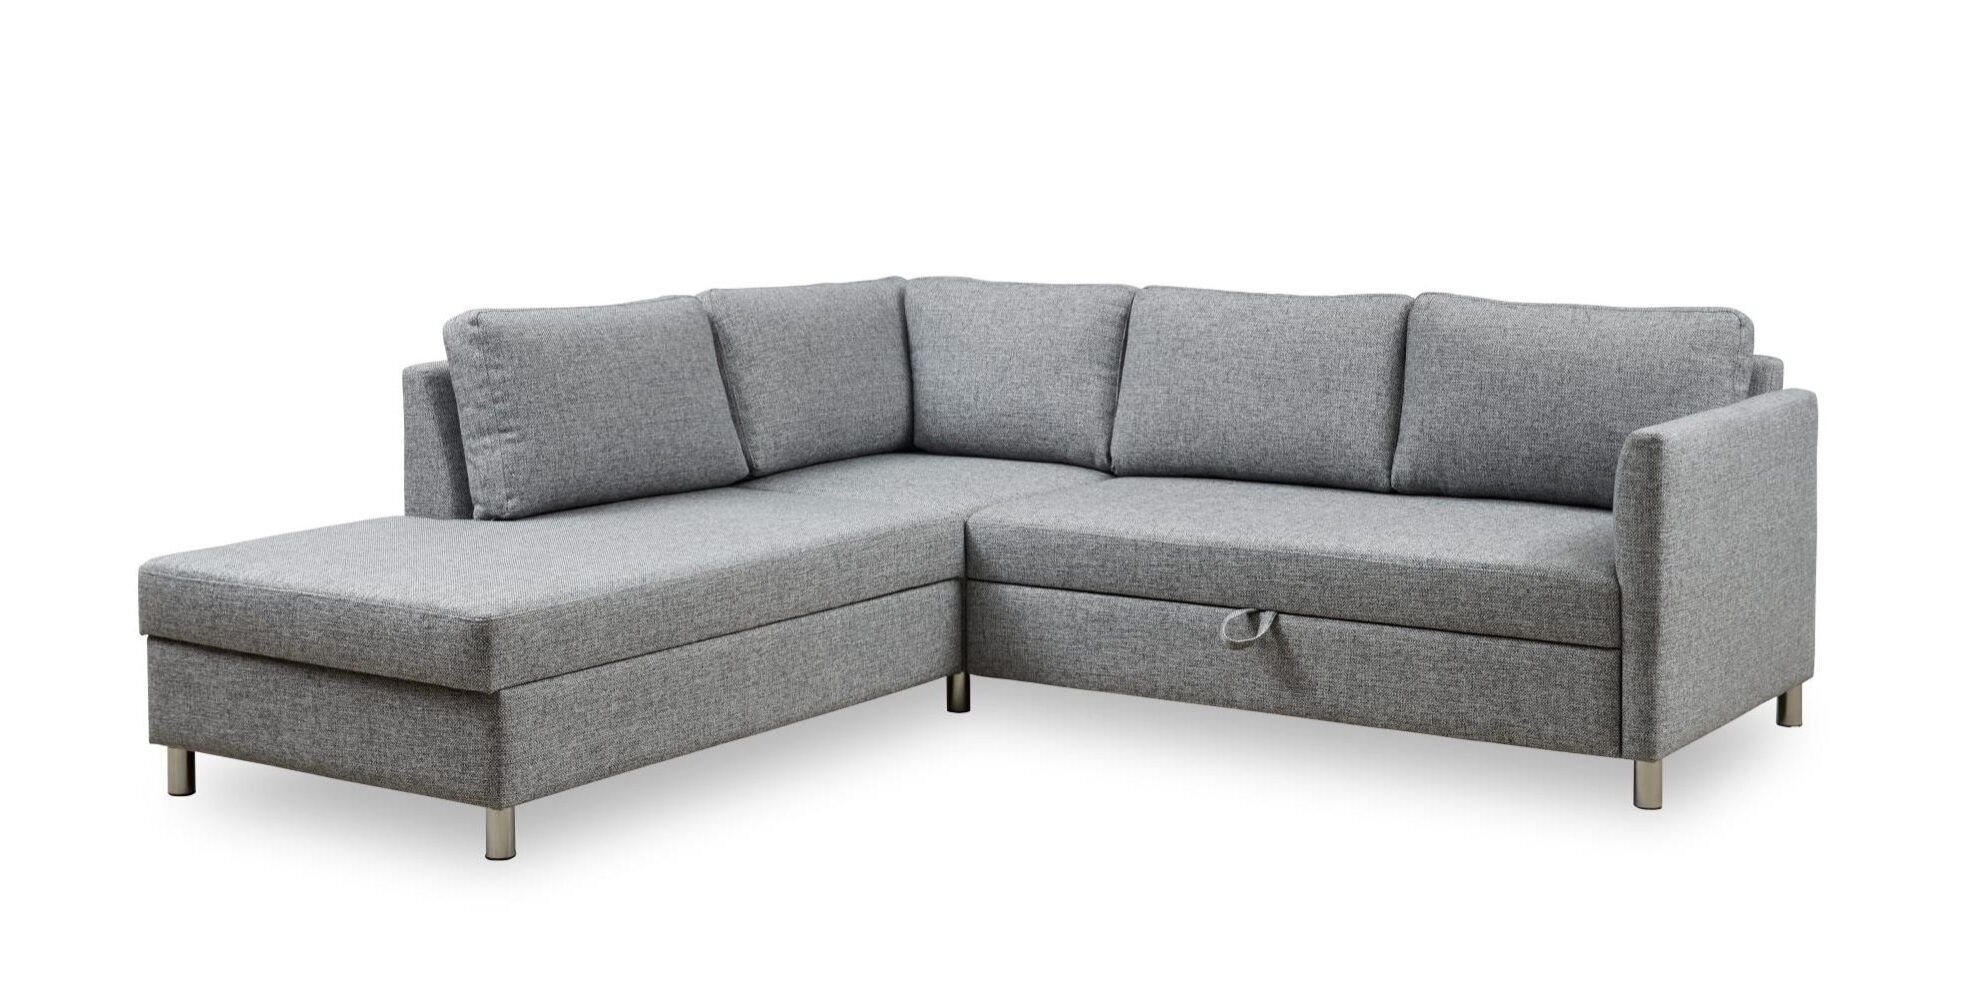 Corner Sofa Bed or Regular Corner Sleeping Couch